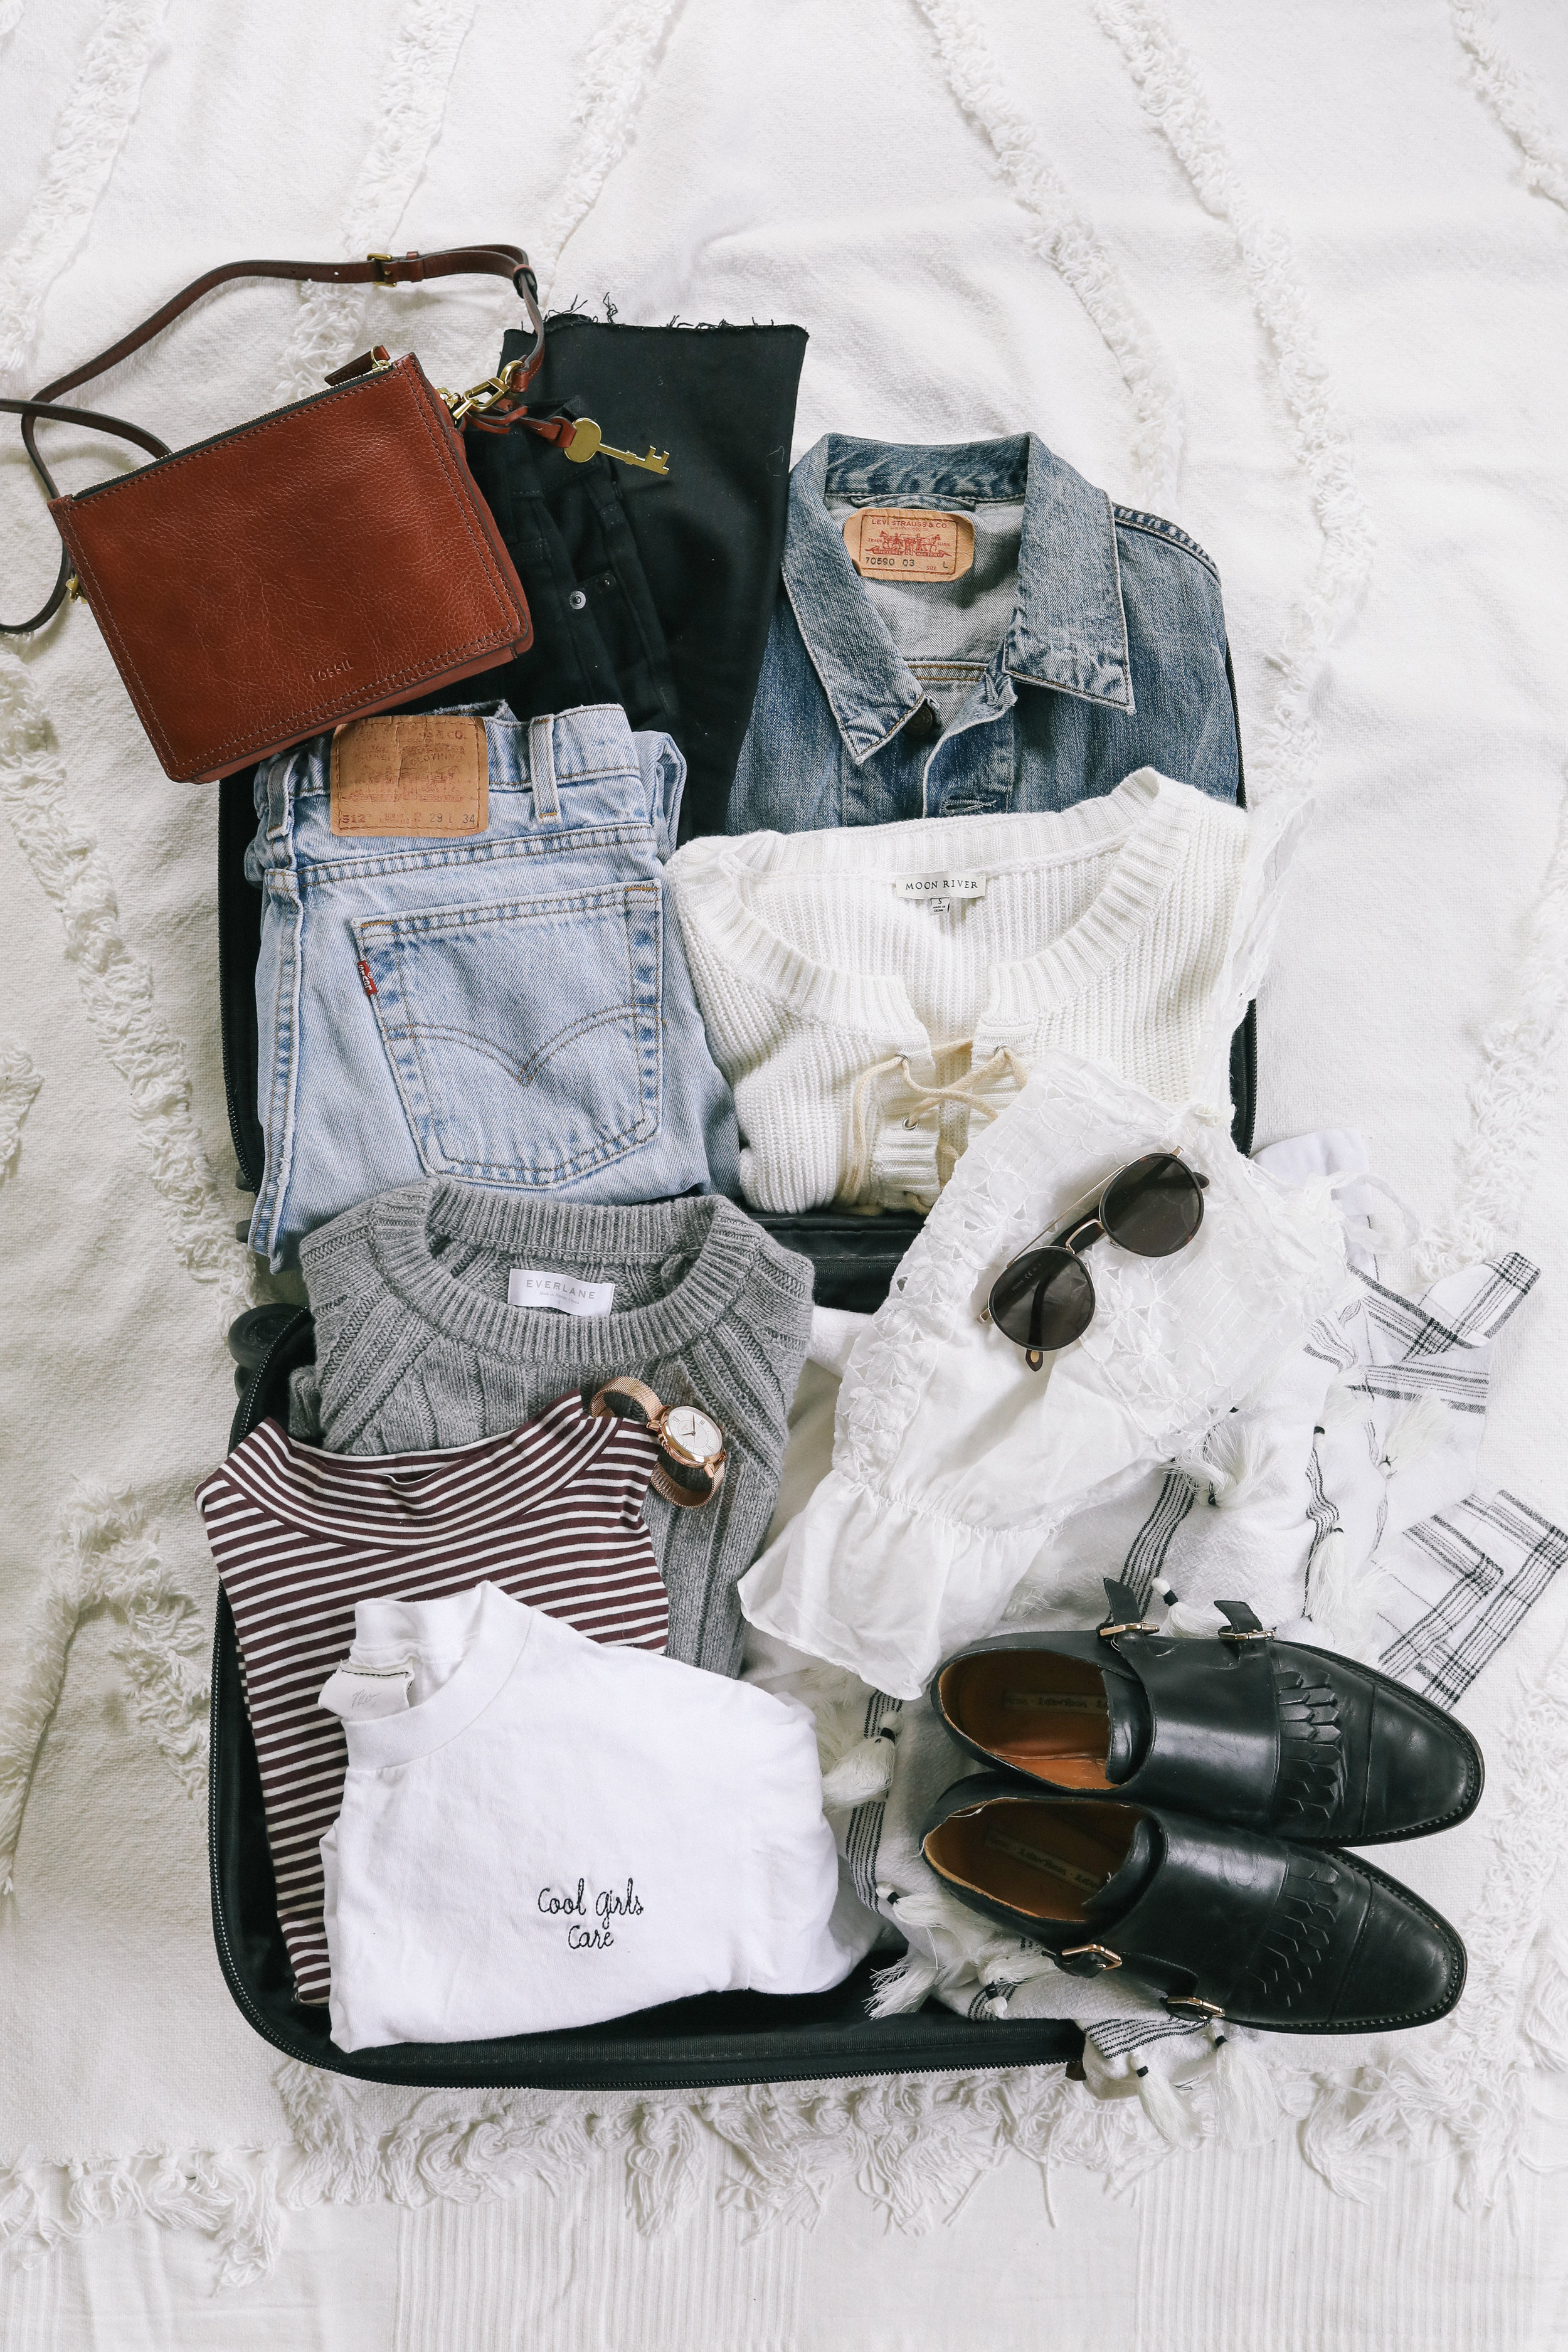 An open suitcase displaying matching outfits and organizational ideas, such as color schemes and white t shirts, to help you pack light